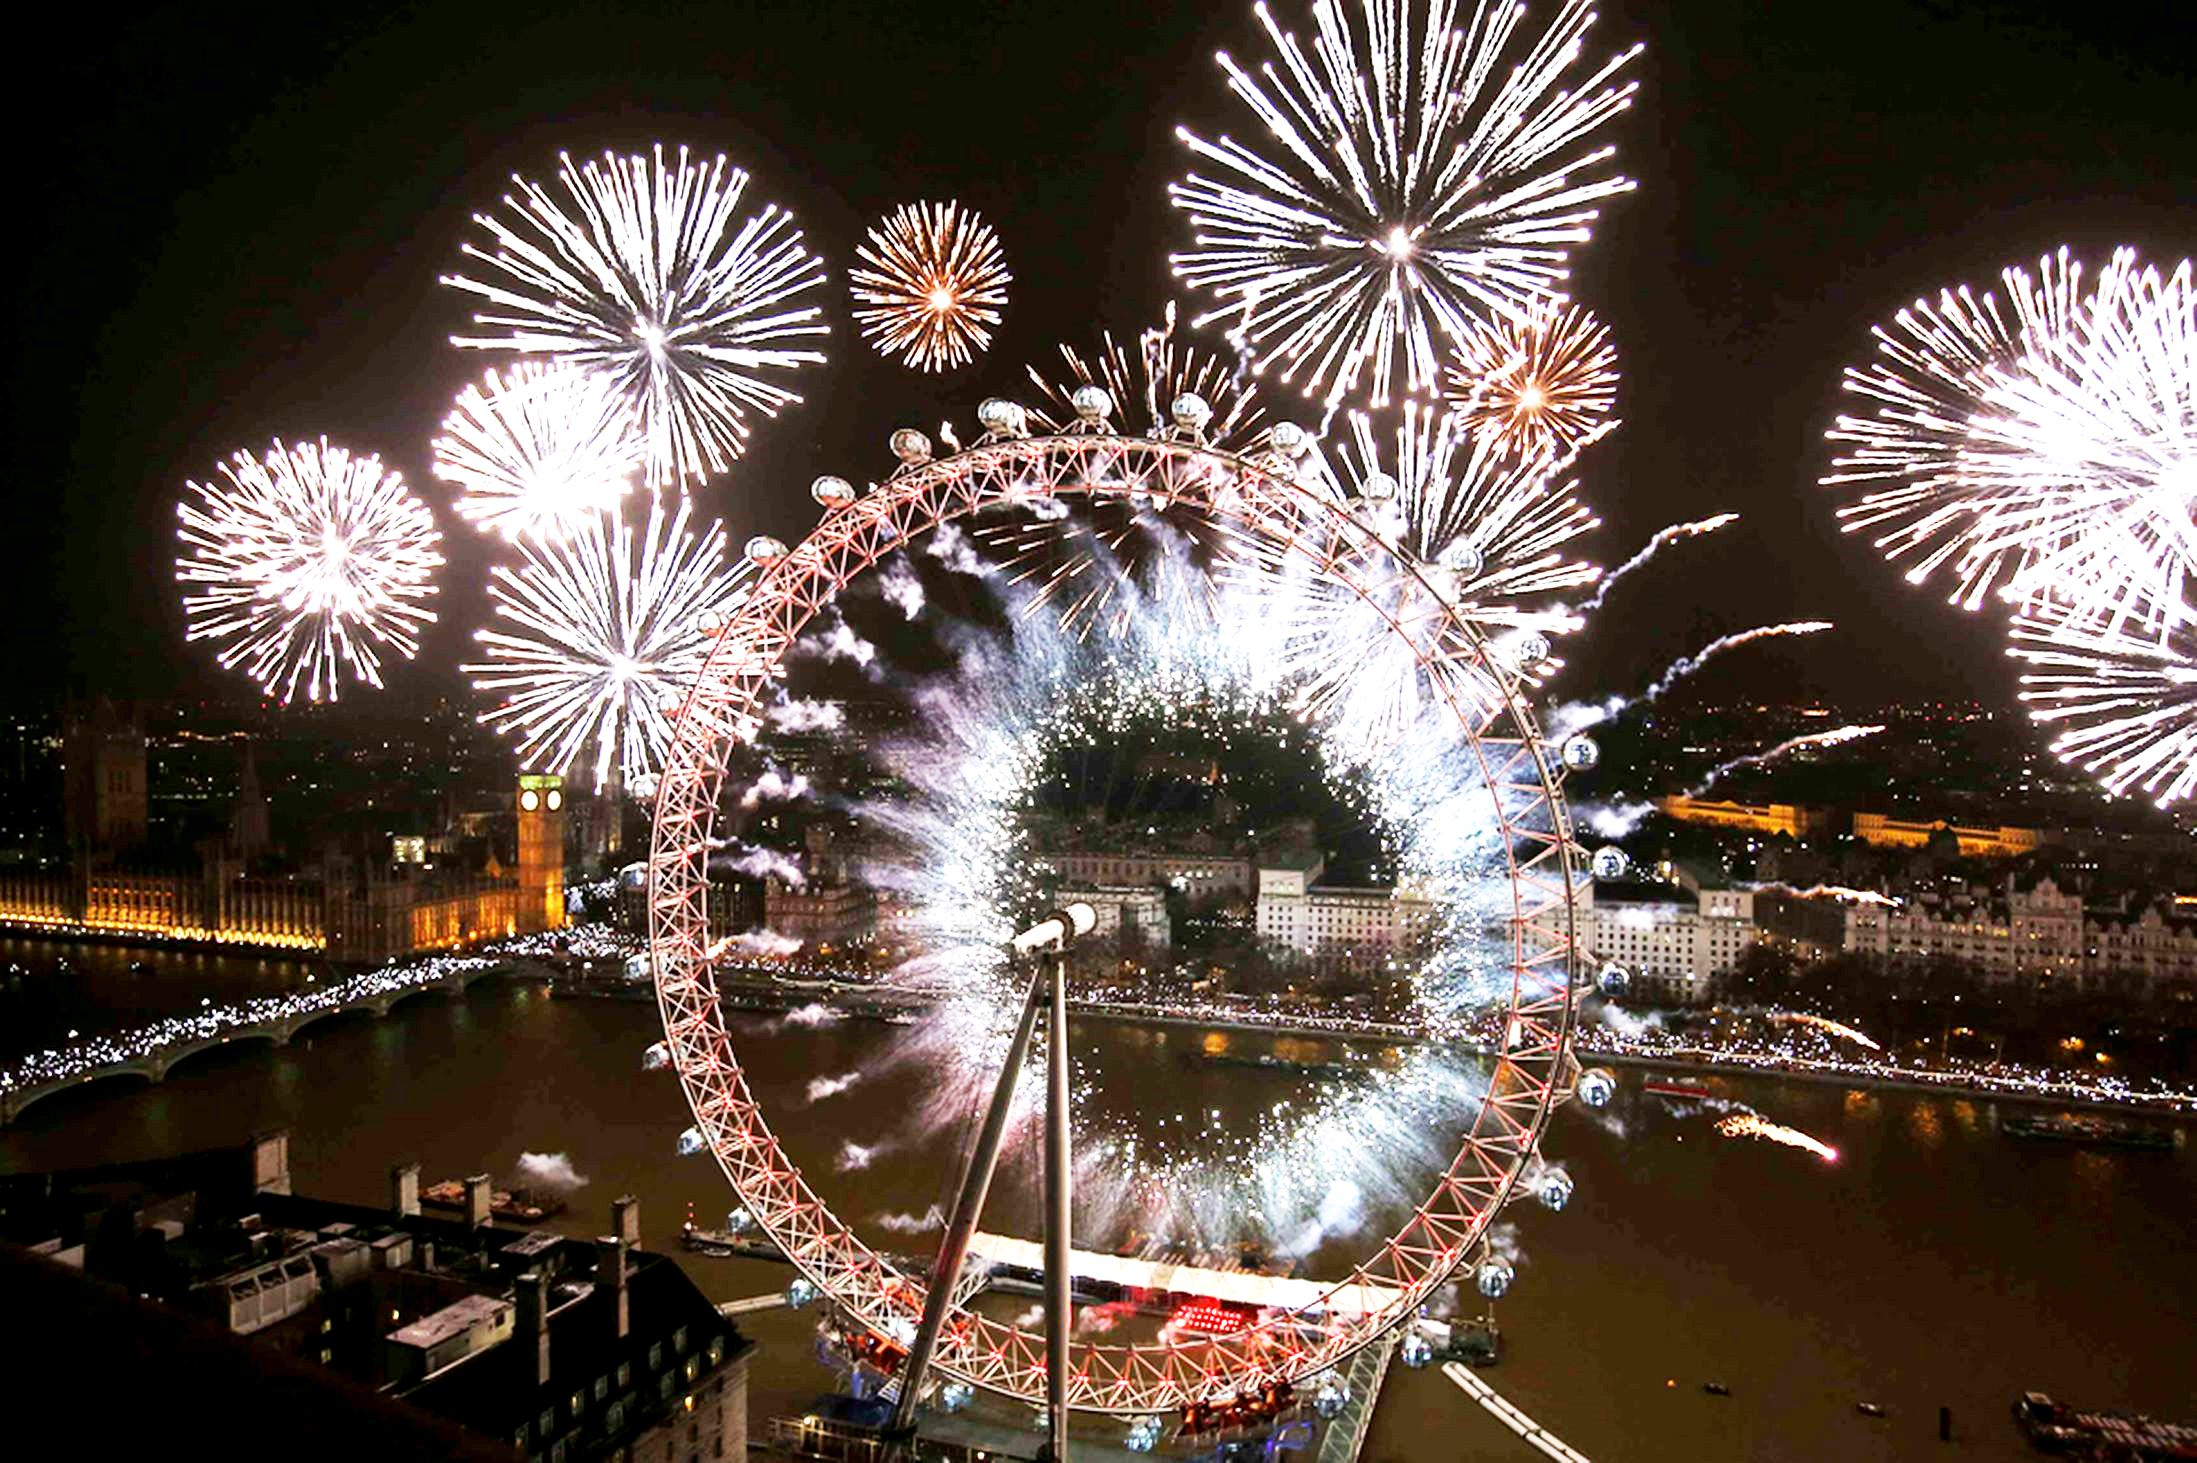 The best view of London's Fireworks is on a New Year's Eve boat cruise